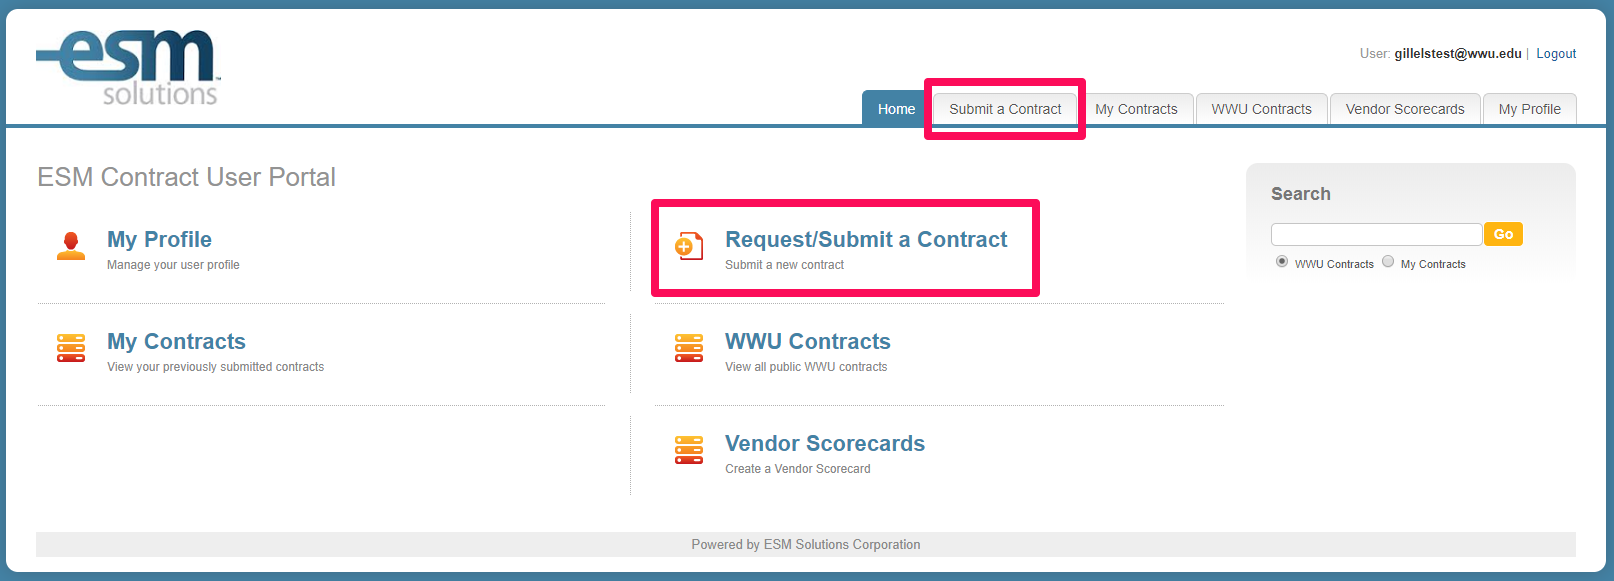 Screenshot of the CMM Submit a Contract areas